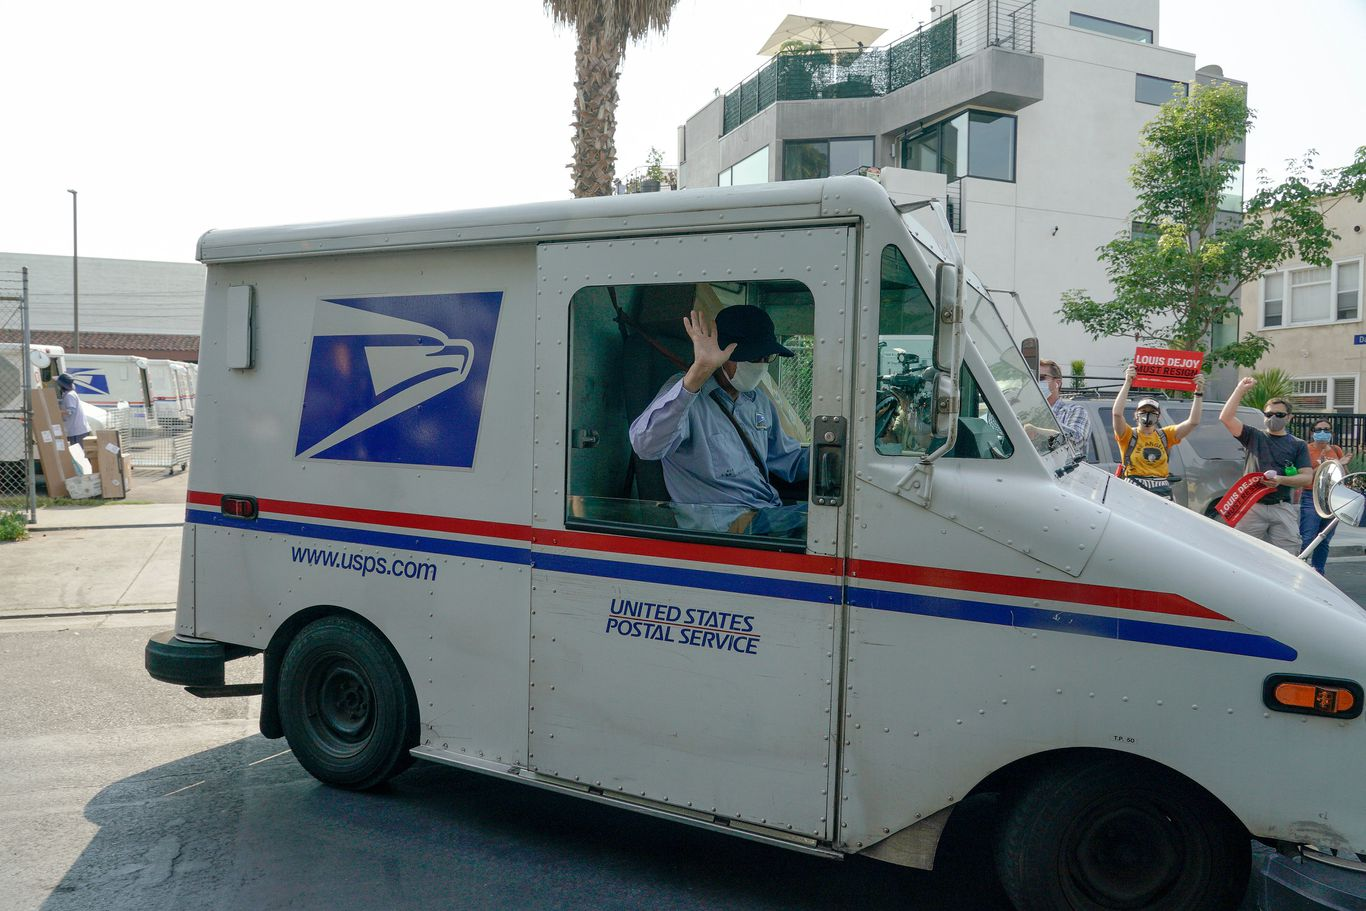 House passes bill to give U.S. Postal Service $25 billion and reverse policy changes thumbnail